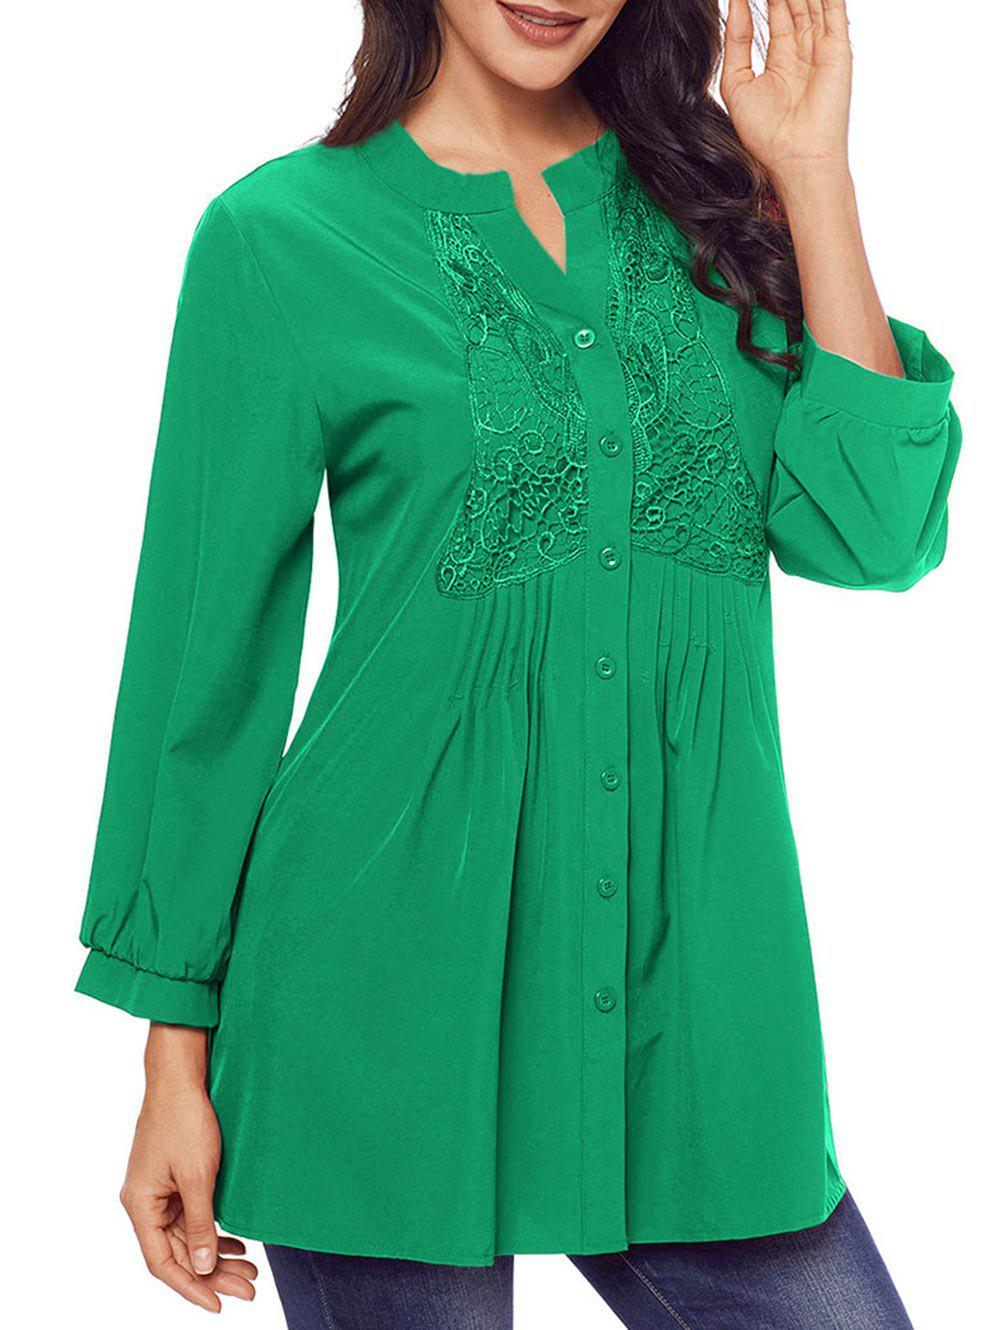 Lace Panel Split Neck Pintuck Tunic Blouse - GREEN S